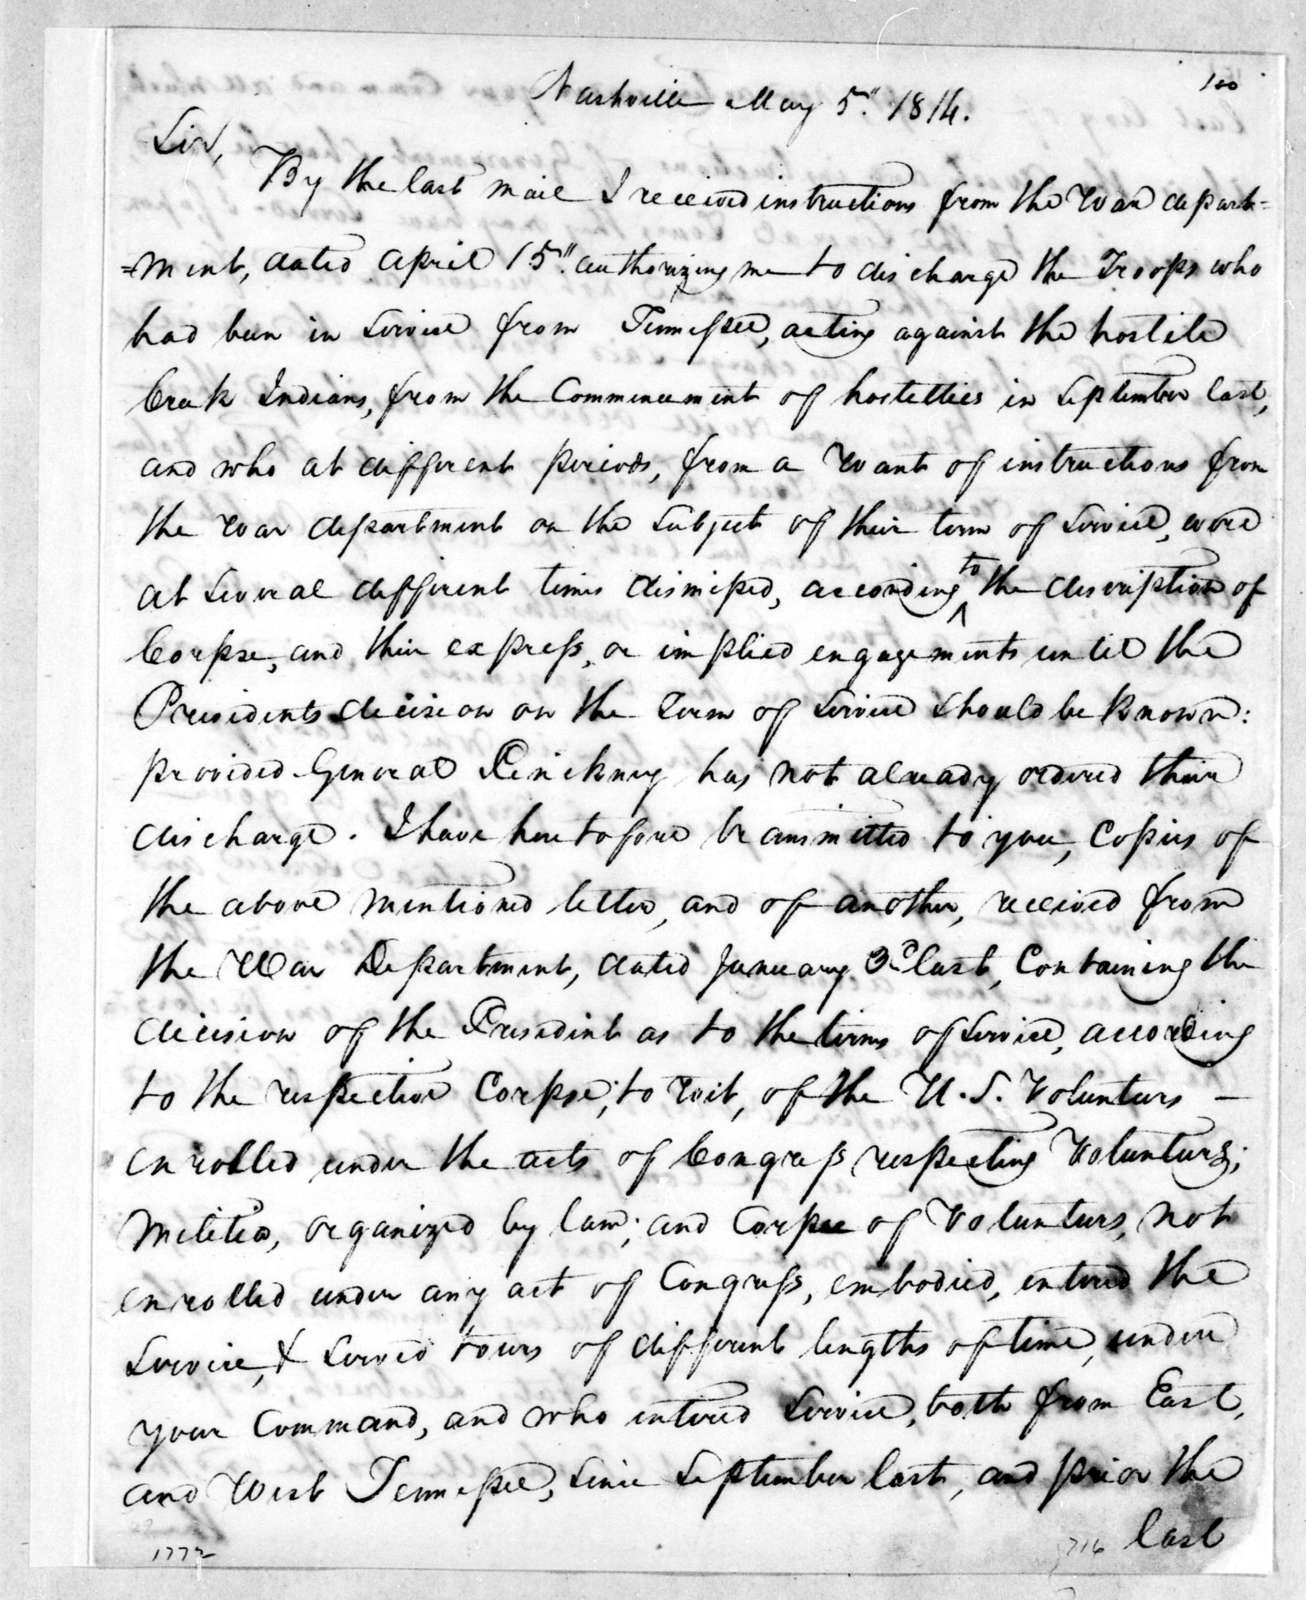 Willie Blount to Andrew Jackson, May 5, 1814